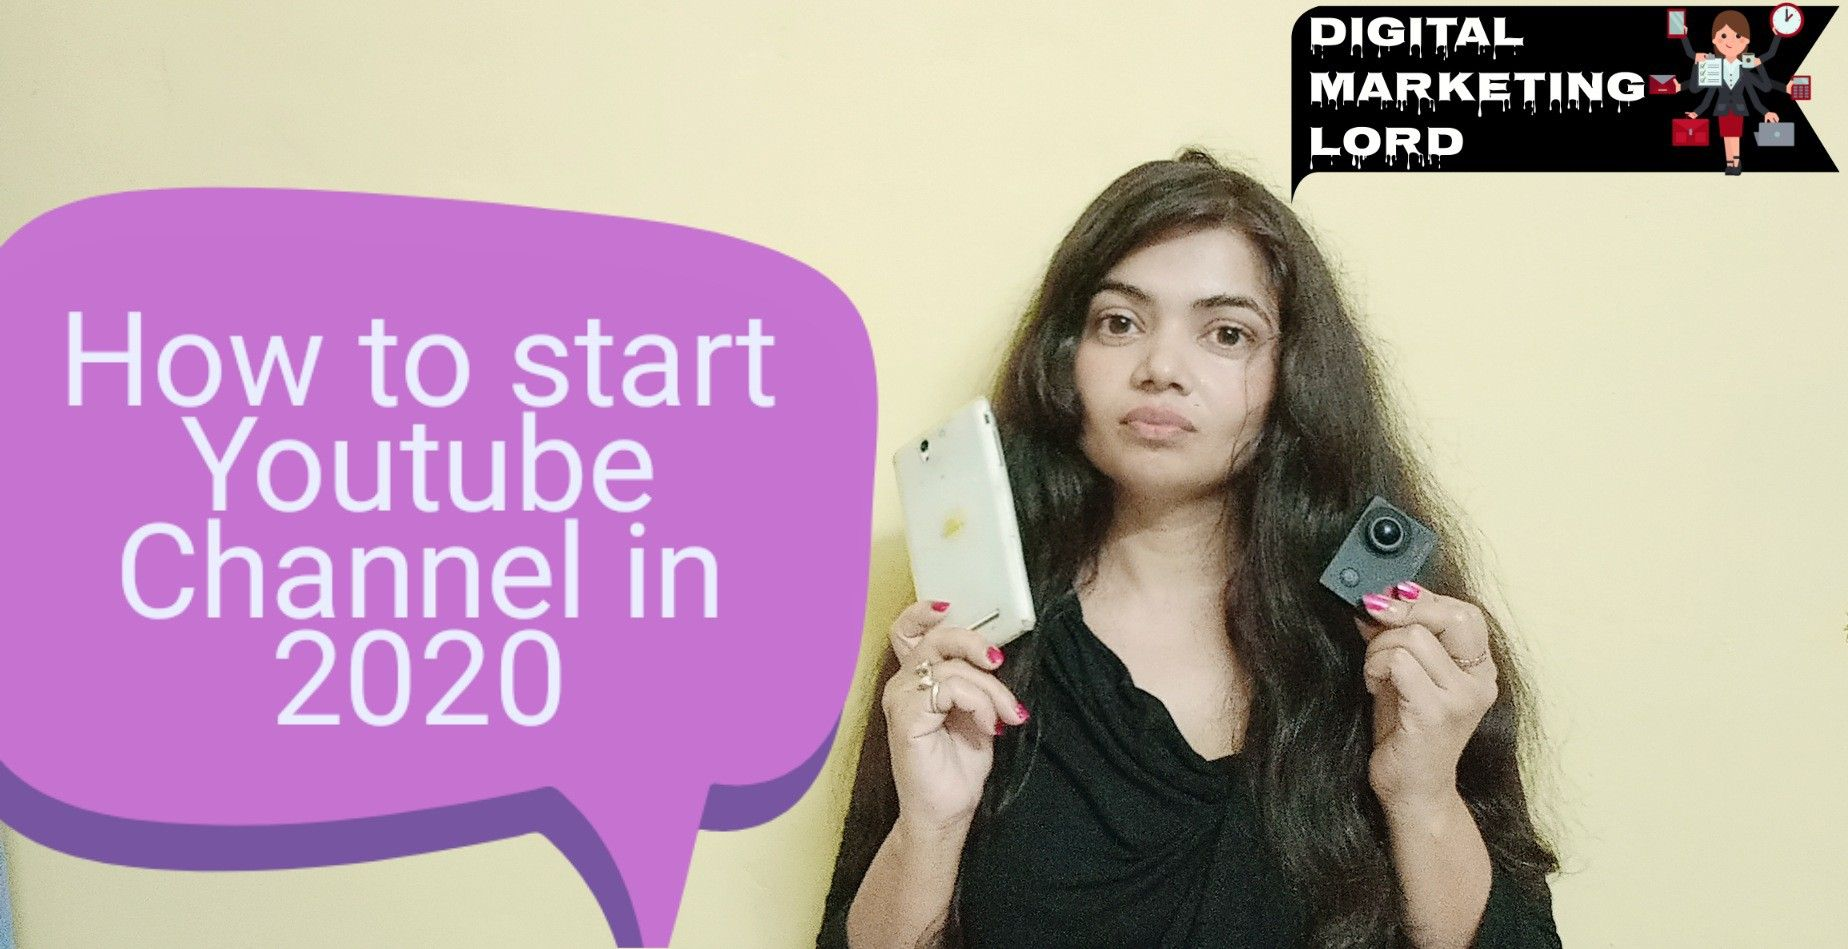 How To Start Youtube Channel In 2020 Start Youtube Channel How To Start Youtube Digital Marketing